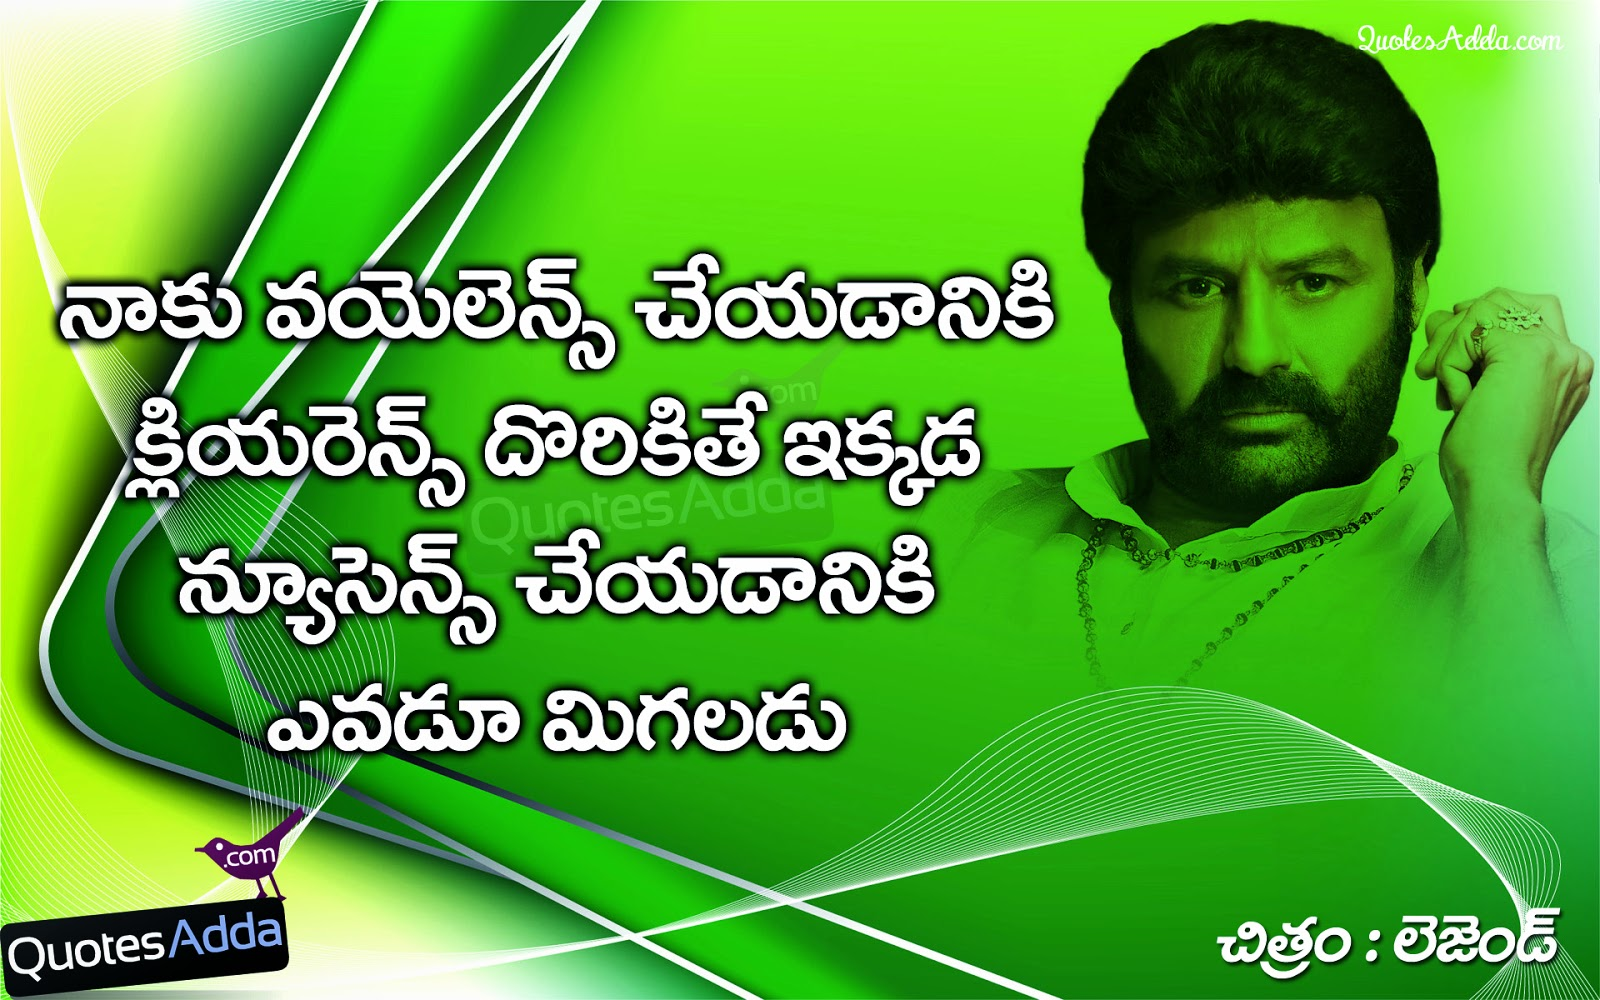 Telugu Movie Legend Punch Dialogues Free. Balakrishna Dialogues Images ...